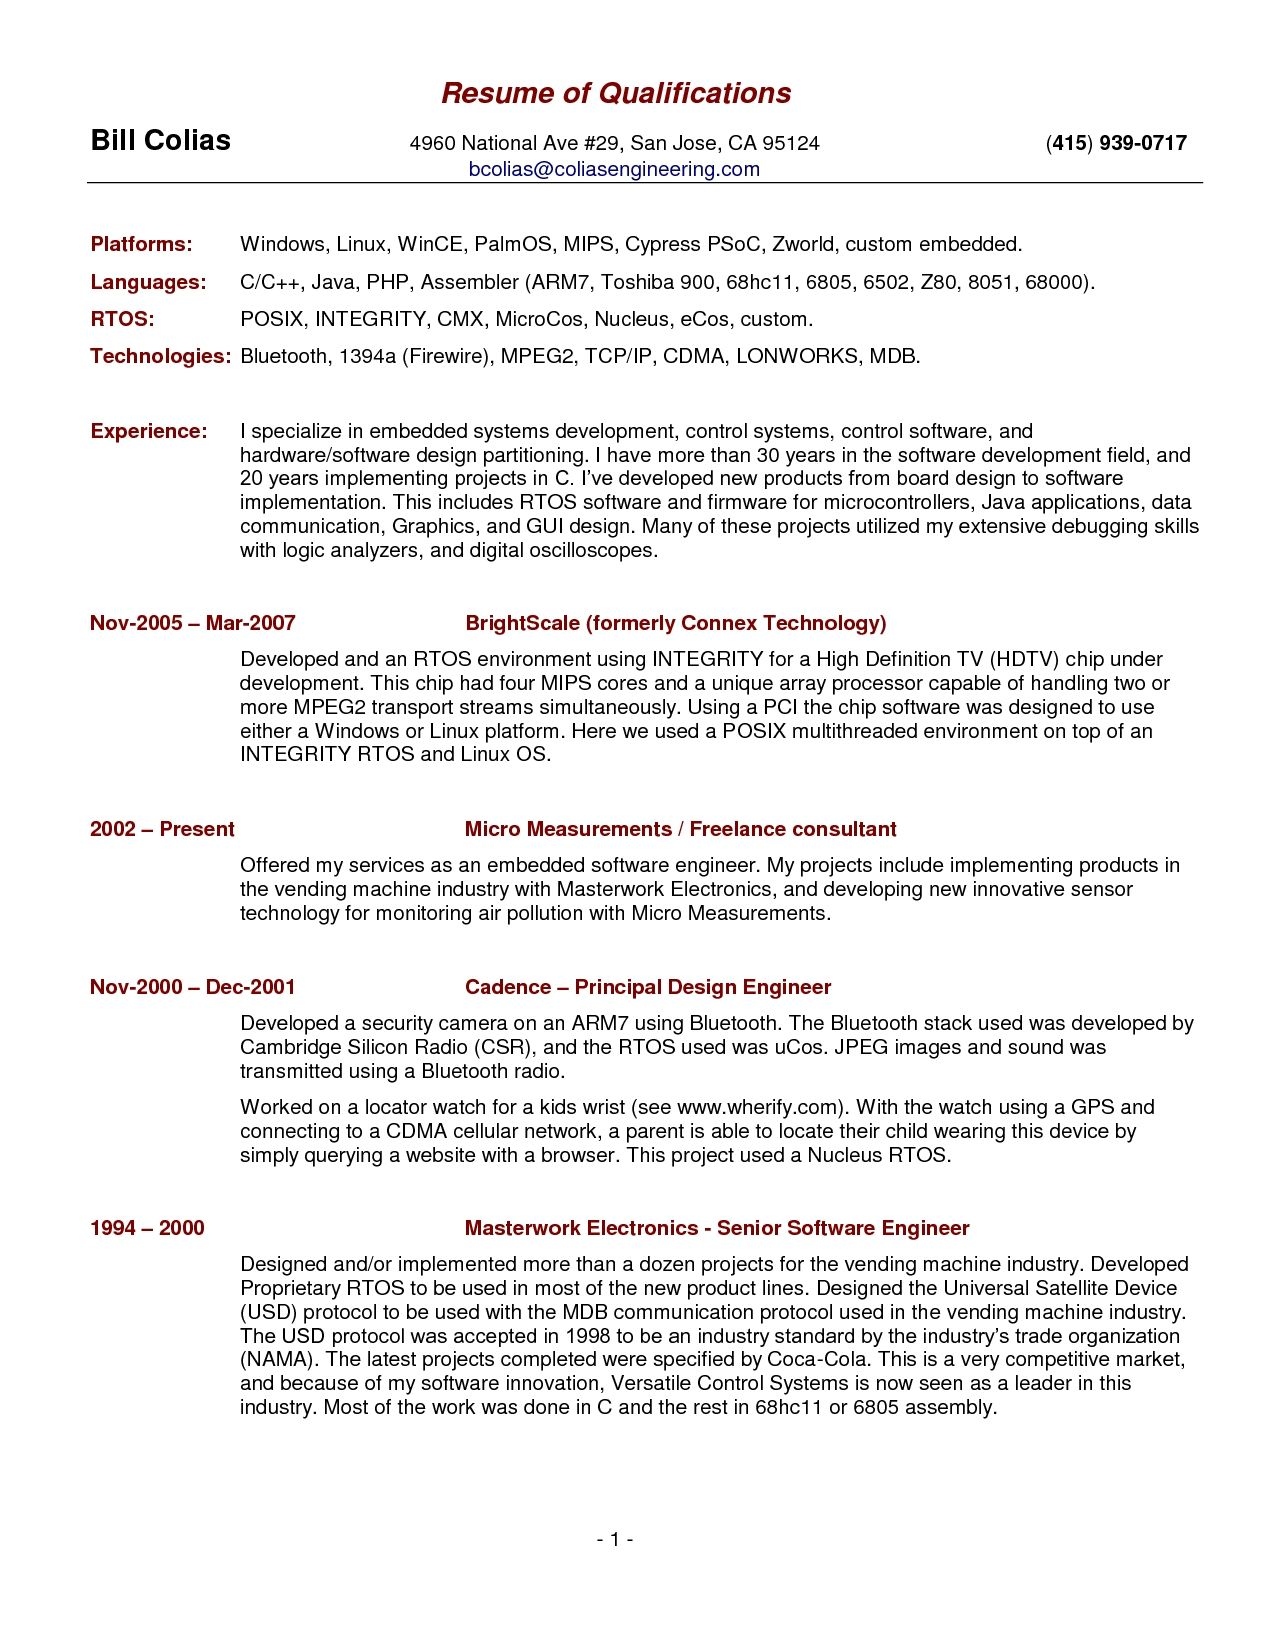 qualifications for a resume examples 7f8ea3a2a new resume skills and qualifications examples - Skill Examples For Resumes